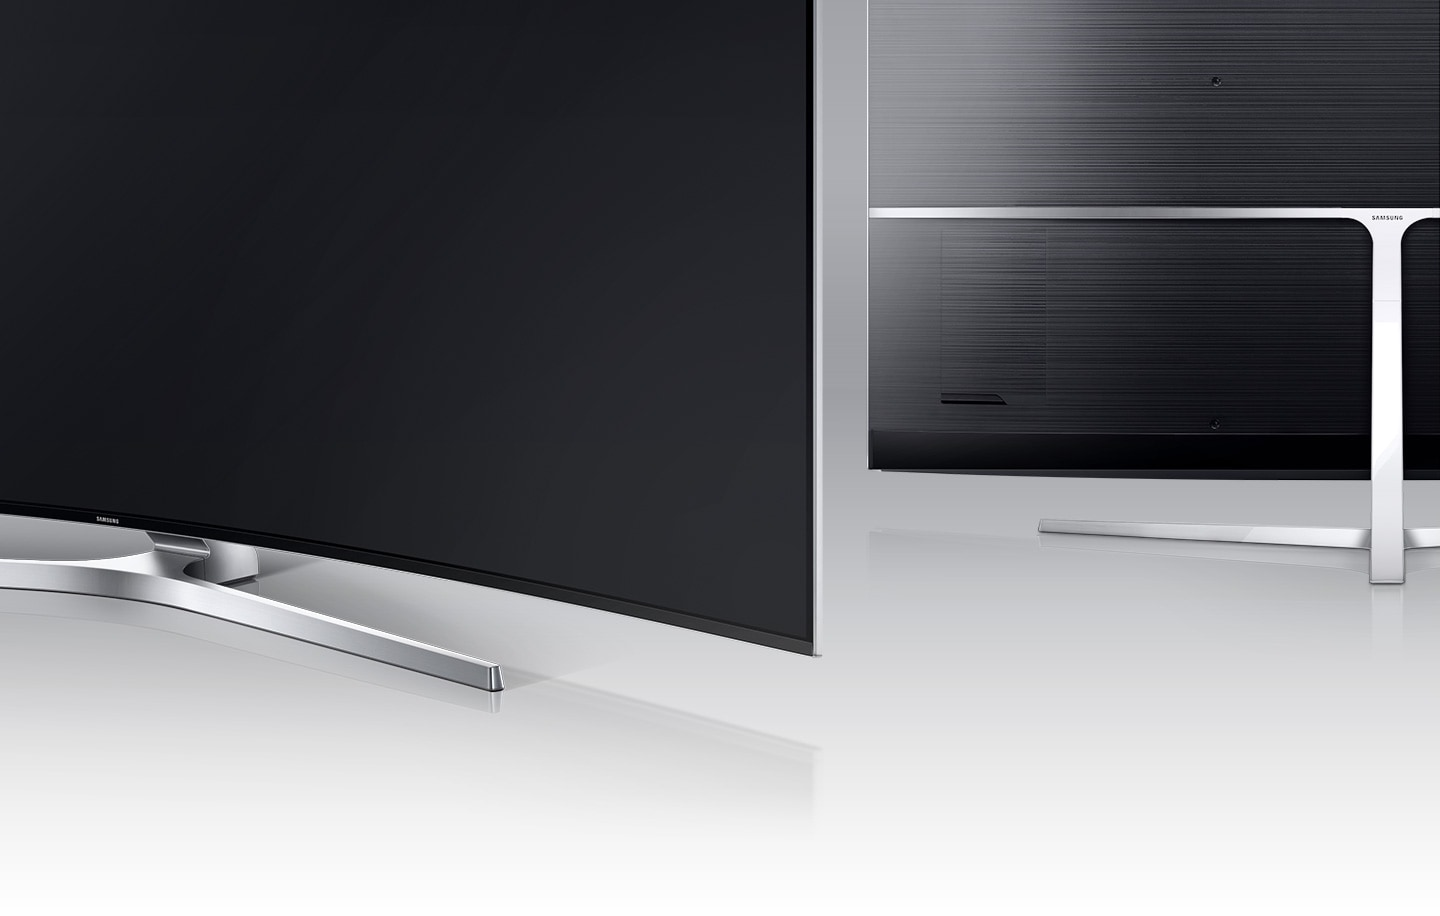 samsung ue55ks8090txzg suhd tv samsung. Black Bedroom Furniture Sets. Home Design Ideas